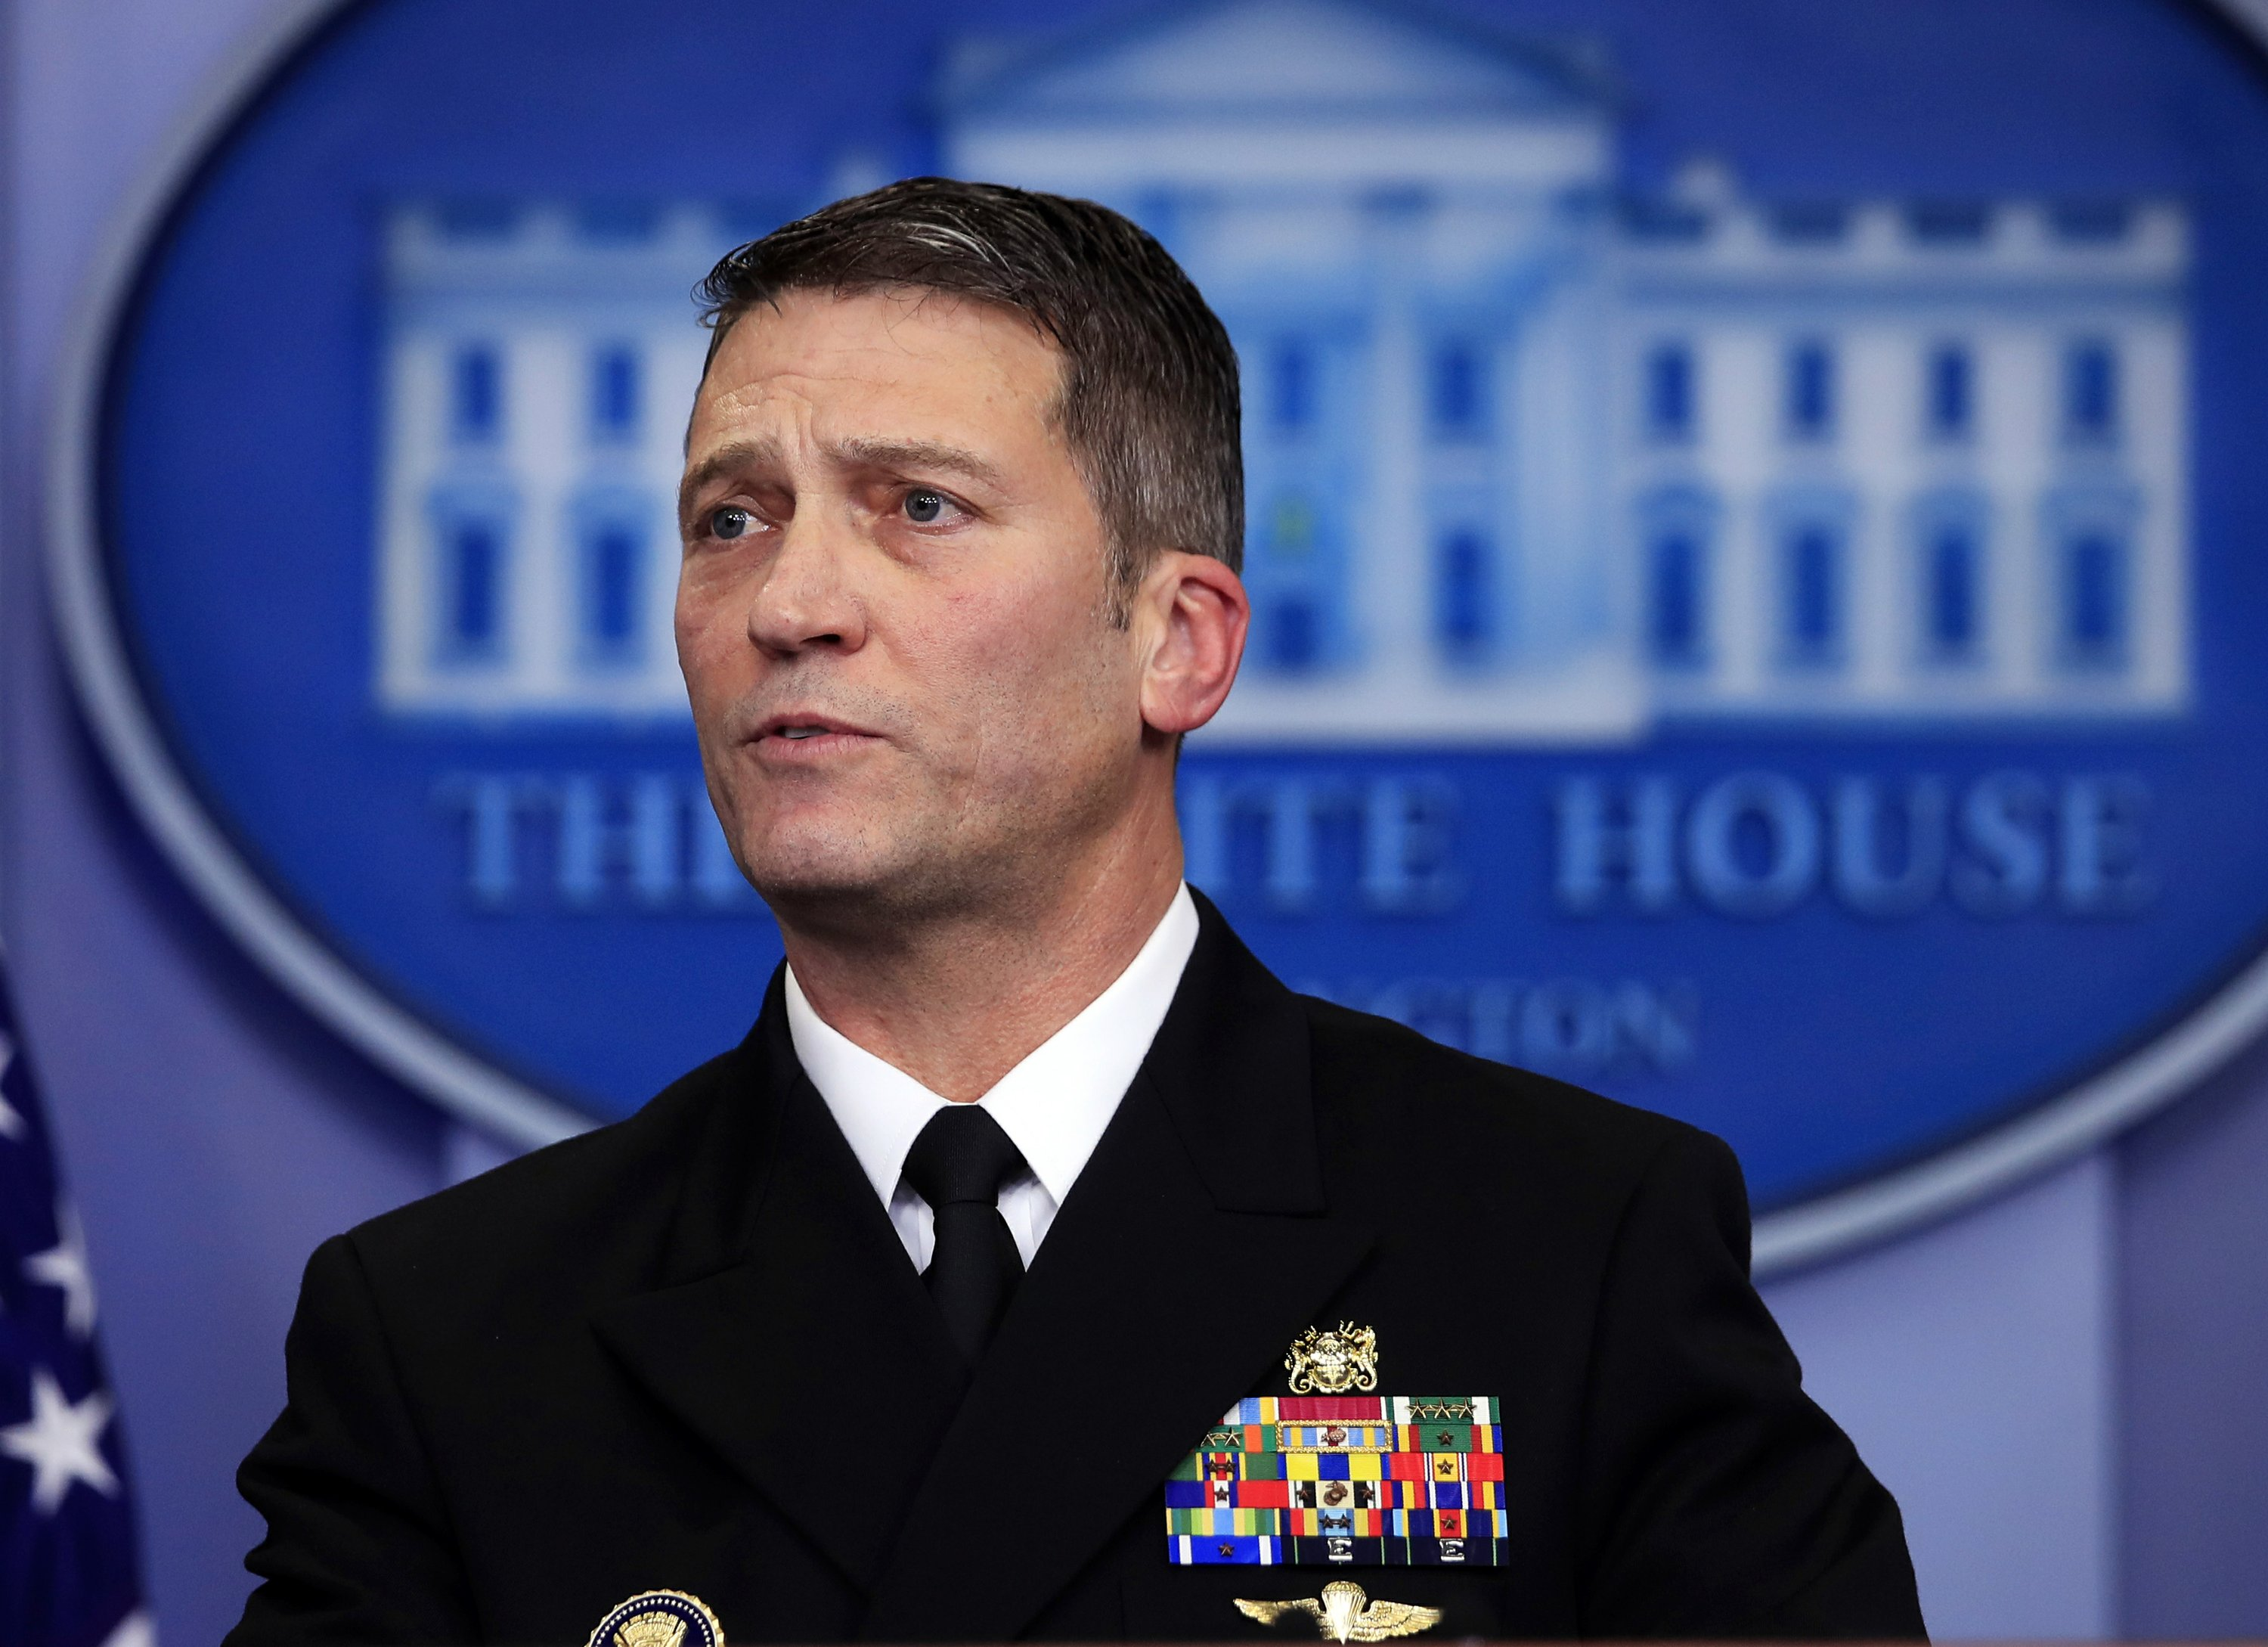 The Latest: Trump doctor says he did well on cognitive exam